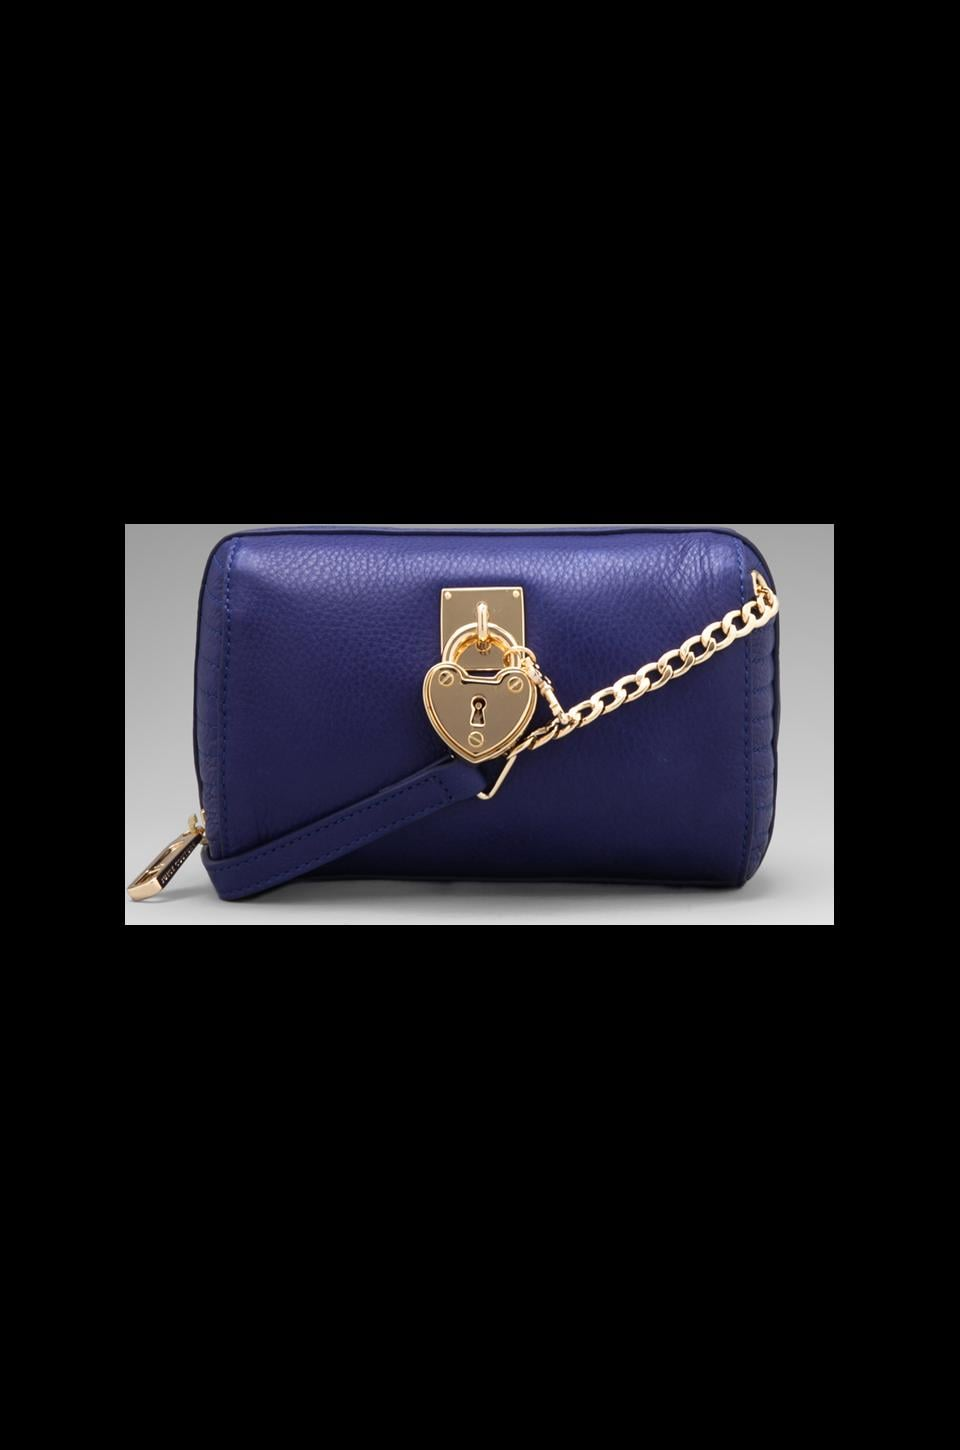 Juicy Couture Signature Leather Mini Steffy in Avery Blue